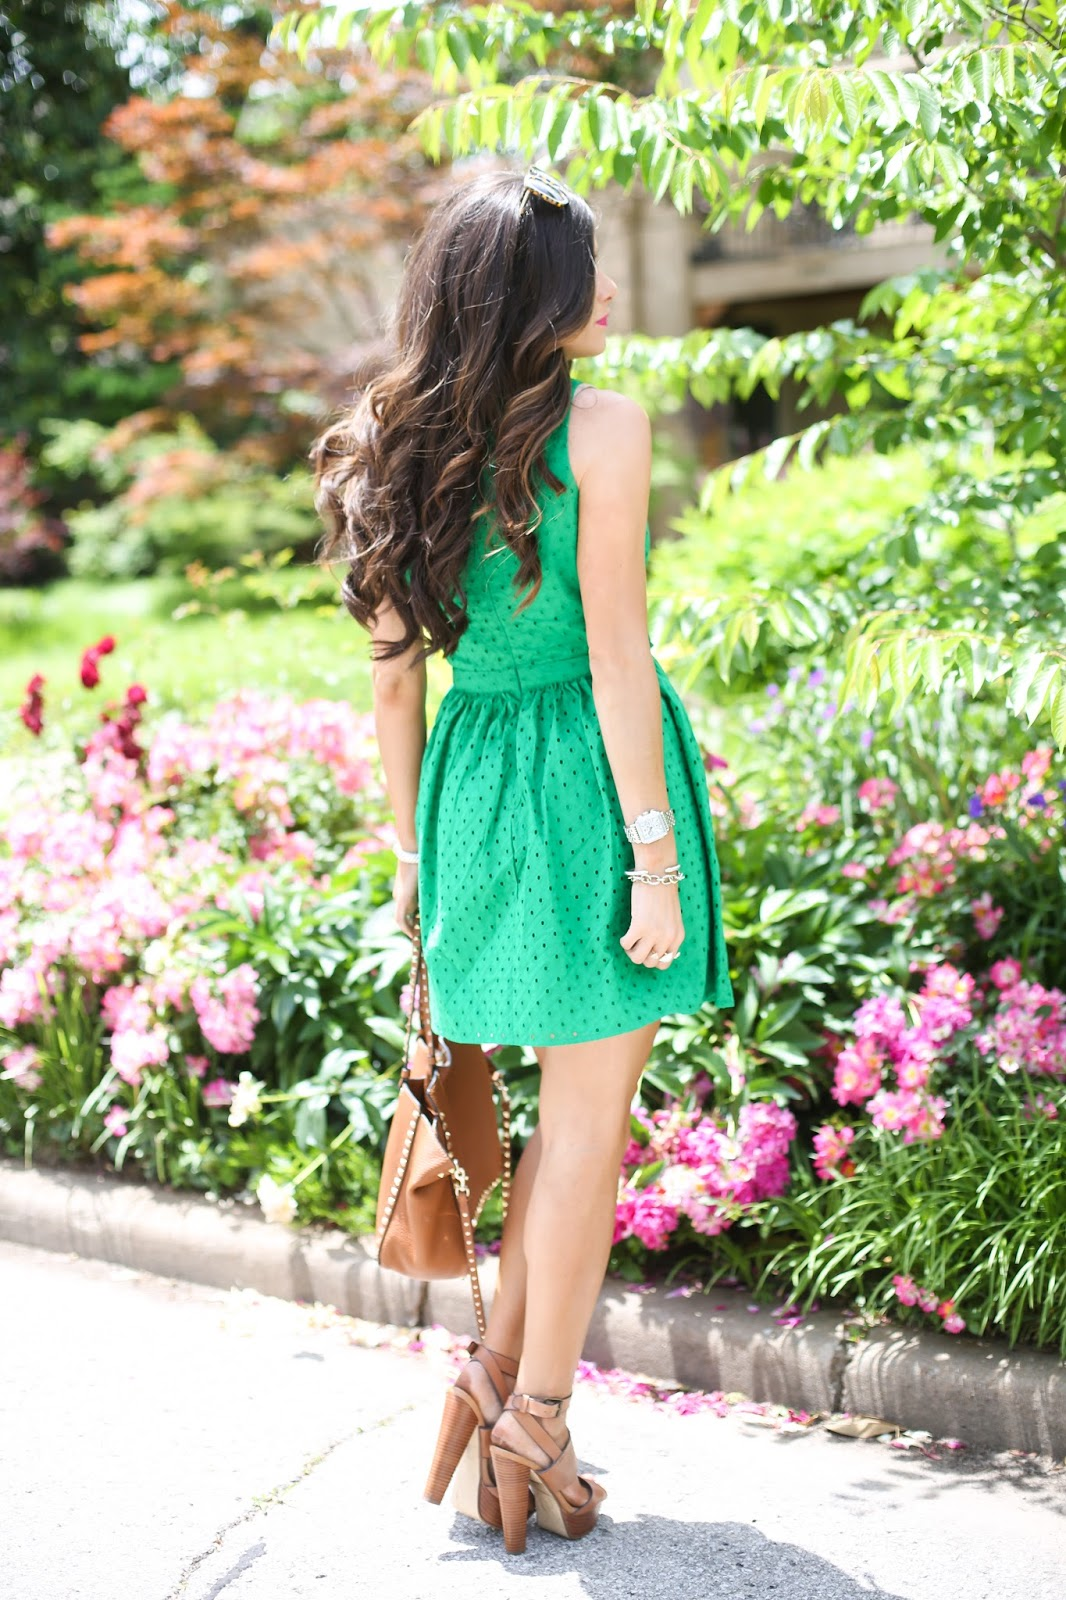 green topshop dress, nordstrom topshop dress, steven madden dezzie heel, summer pinterest fashion 2015, pinterest outfit ideas summer2015, casual summer outfit ideas pinterest-4